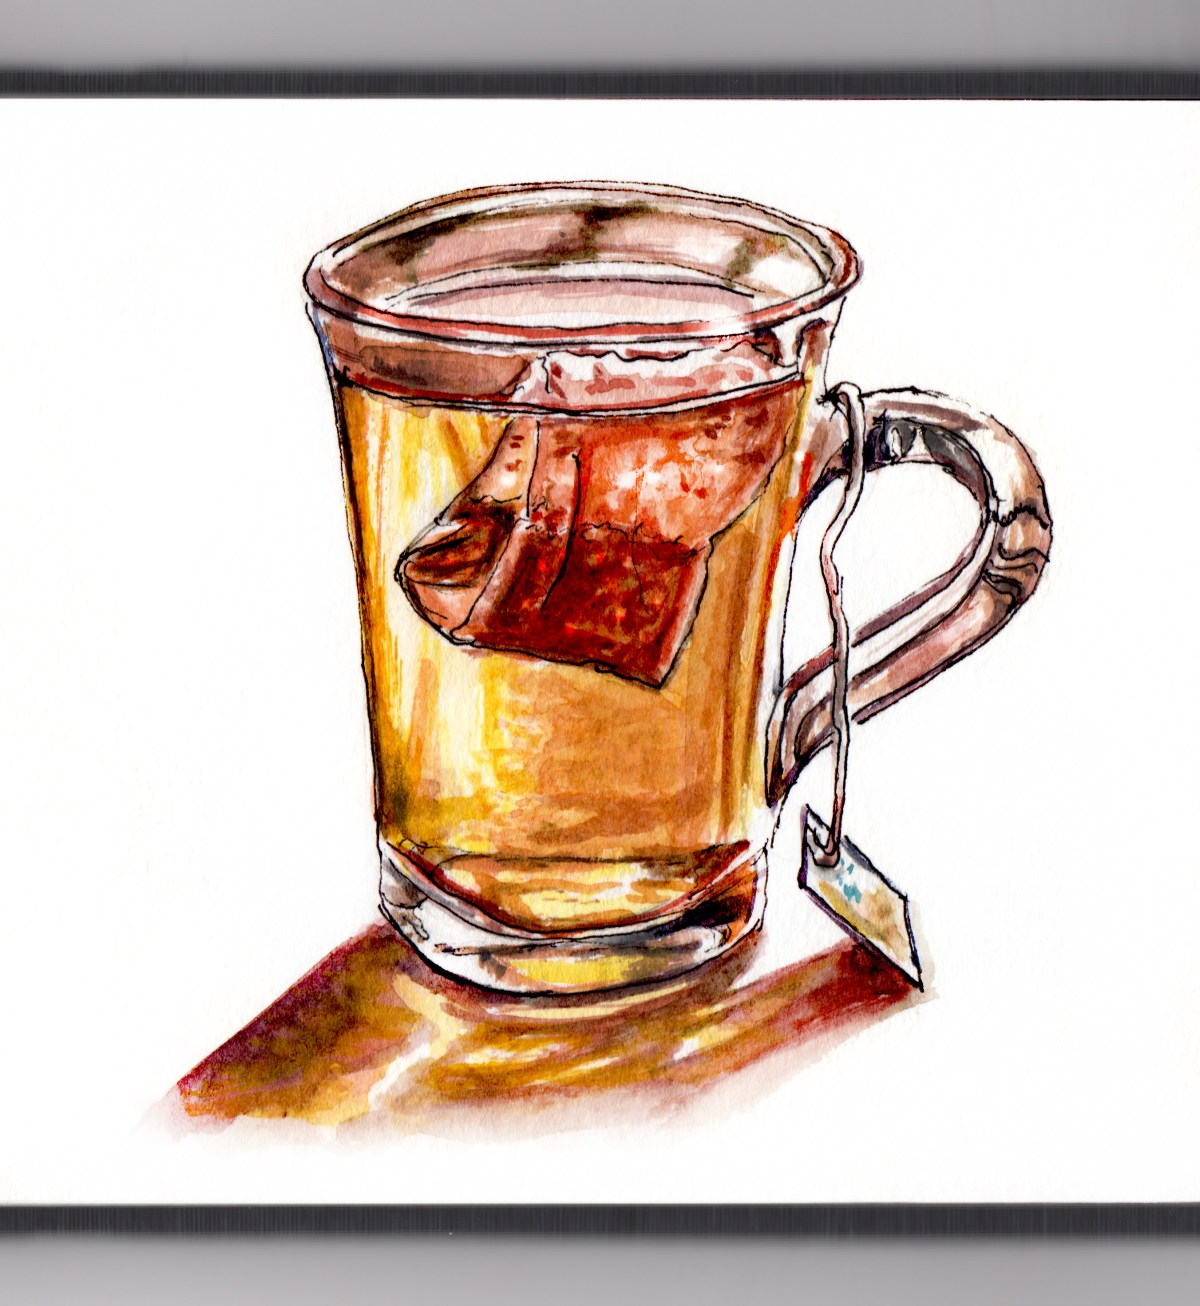 Day 7 - #WorldWatercolorGroup - Reading Tea Leaves Tea Bag in Glass Mug Watercolor - #doodlewash